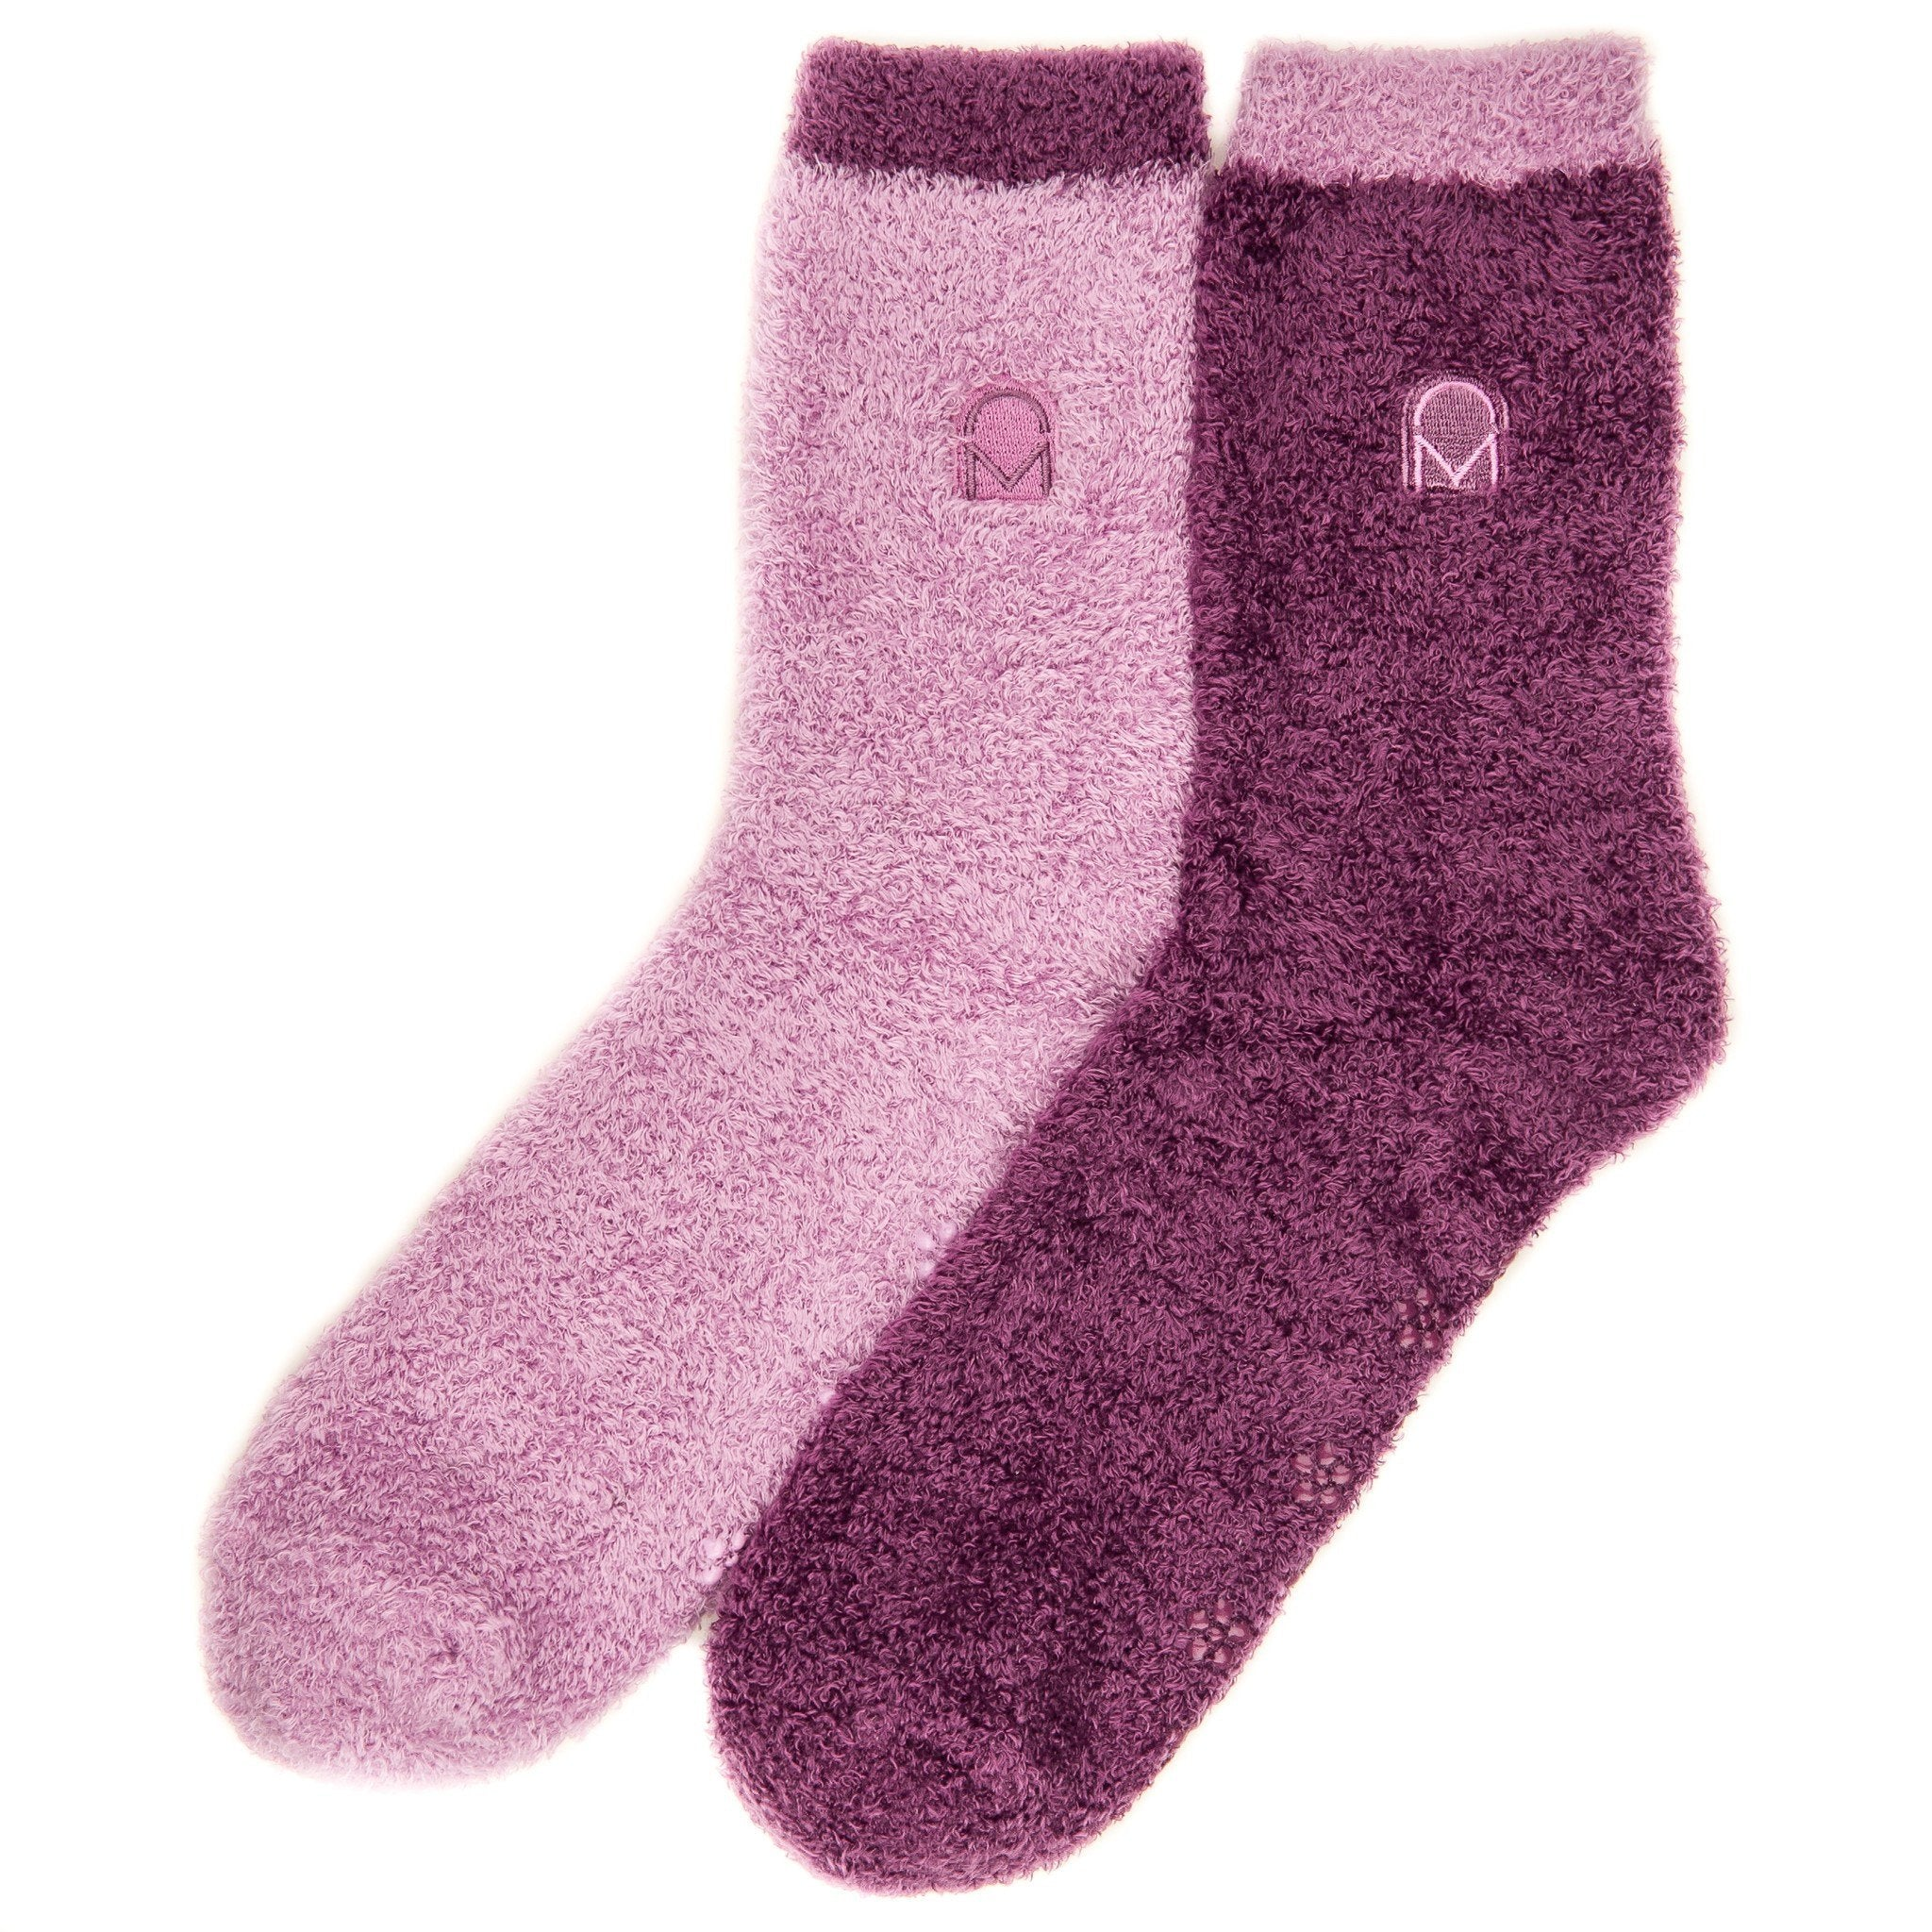 Women's Soft Anti-Skid Winter Feather Socks - 2-Pairs - Set A1